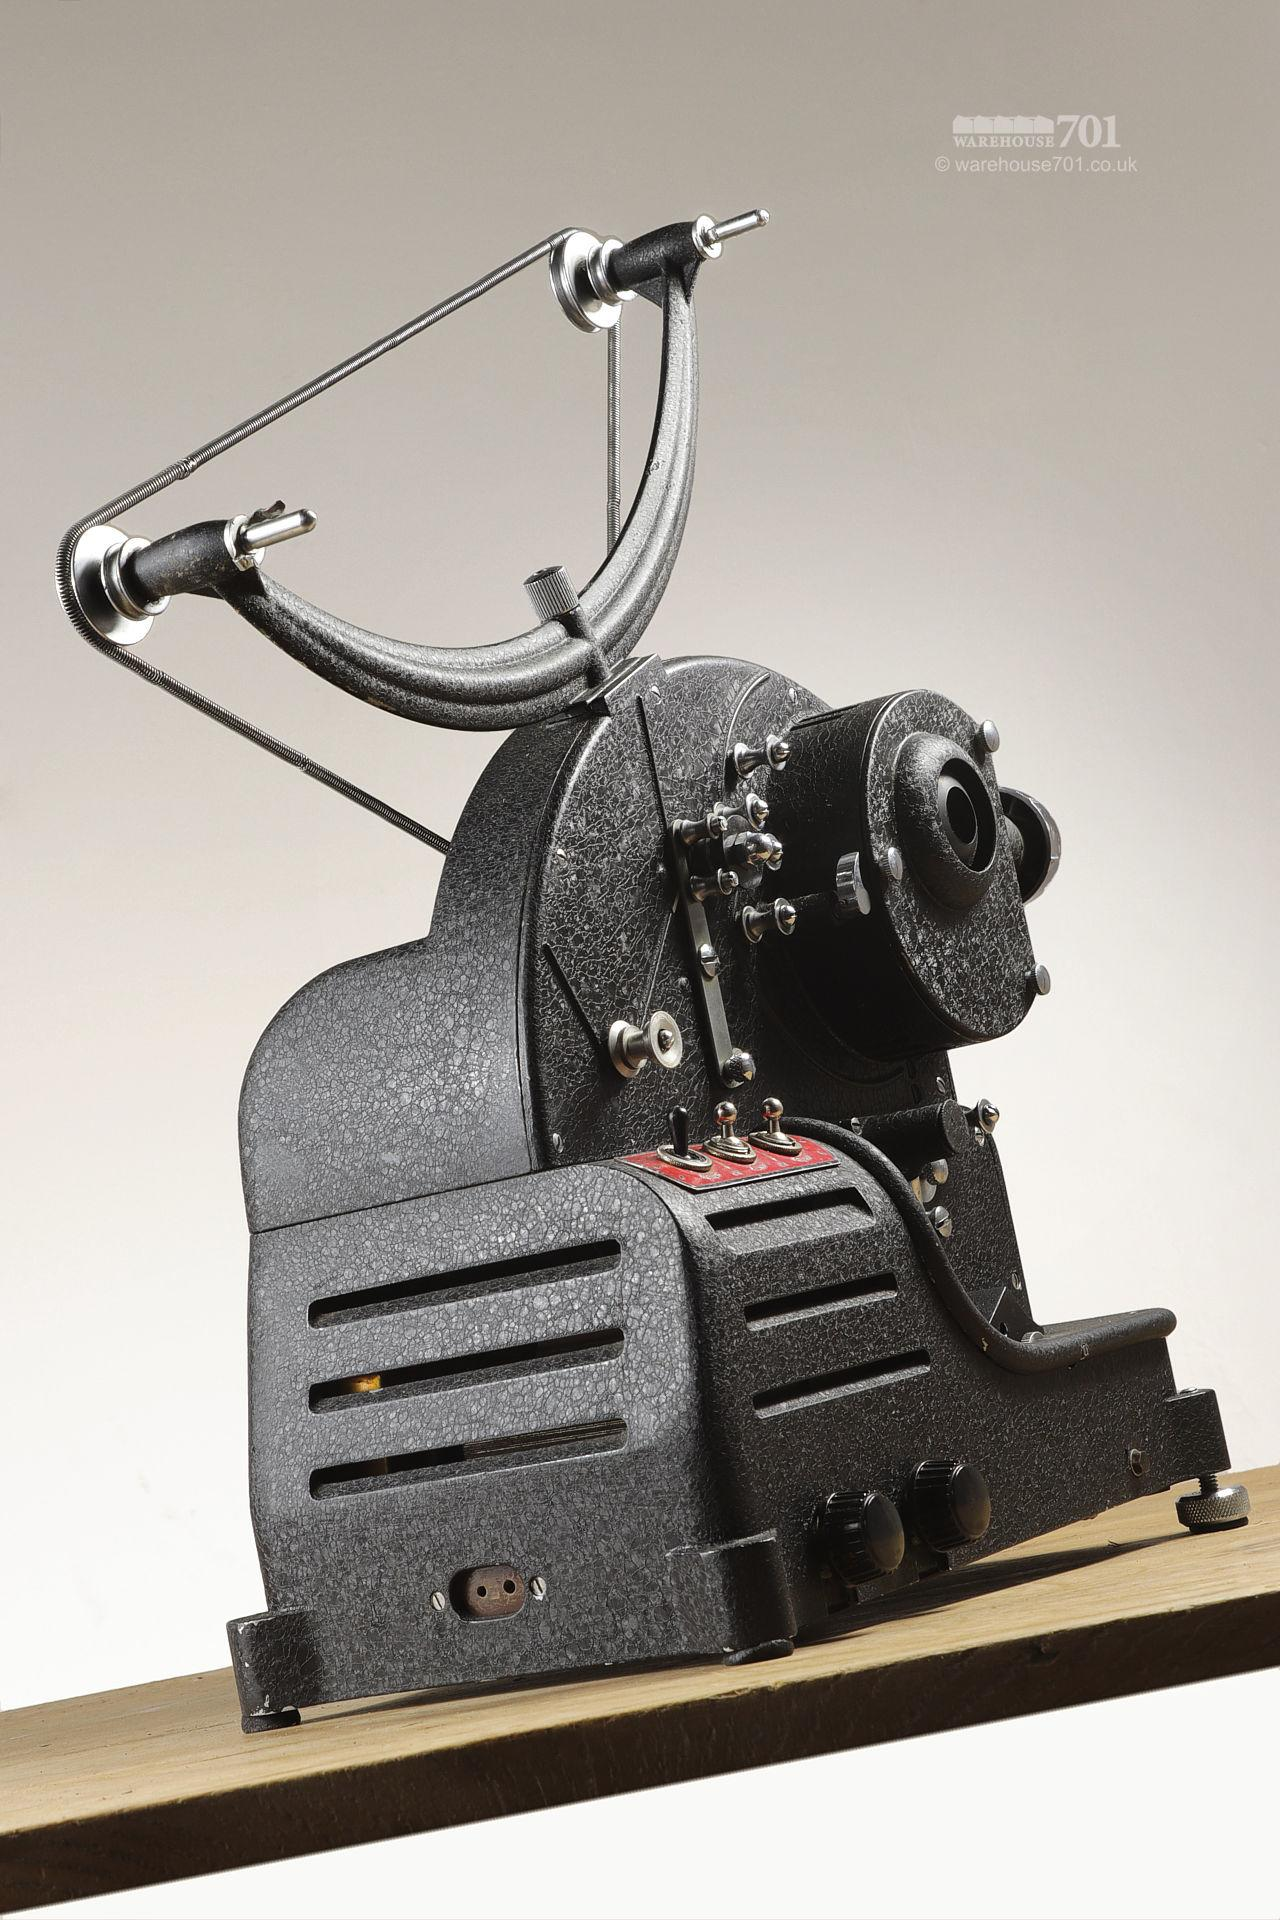 Pathescope 'Son' Vintage Film Projector #3